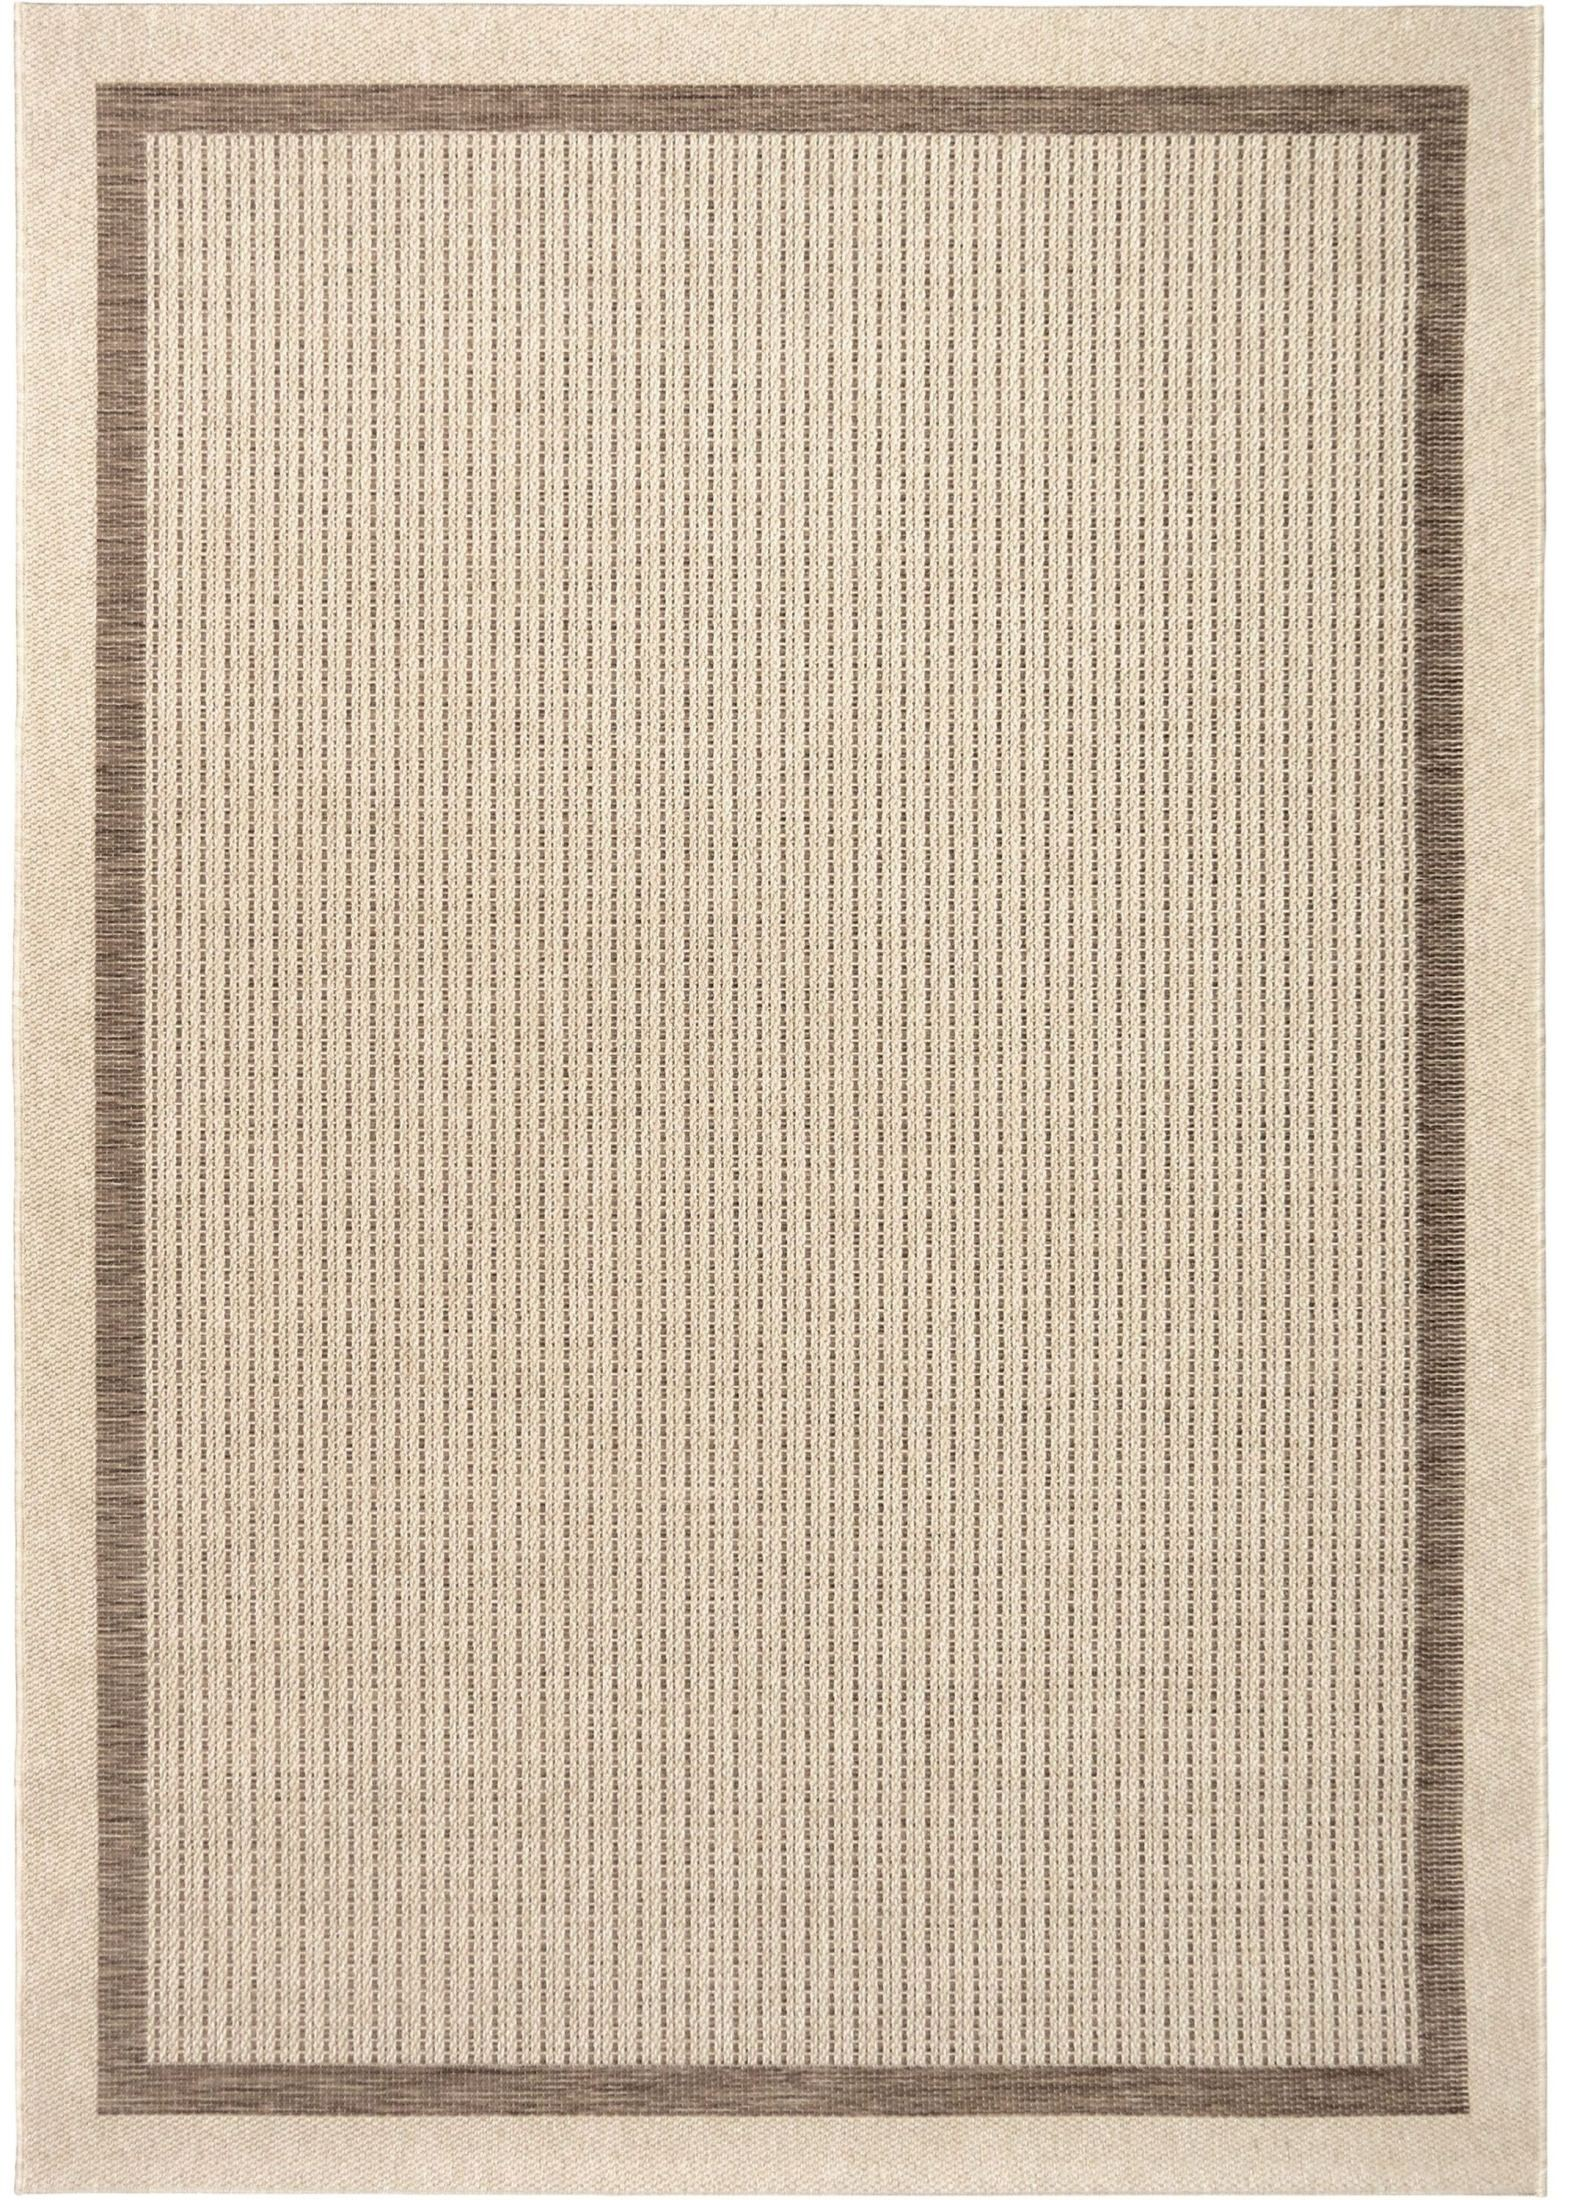 Jersey Home Indoor Outdoor Border Aviva Tan Large Area Rug